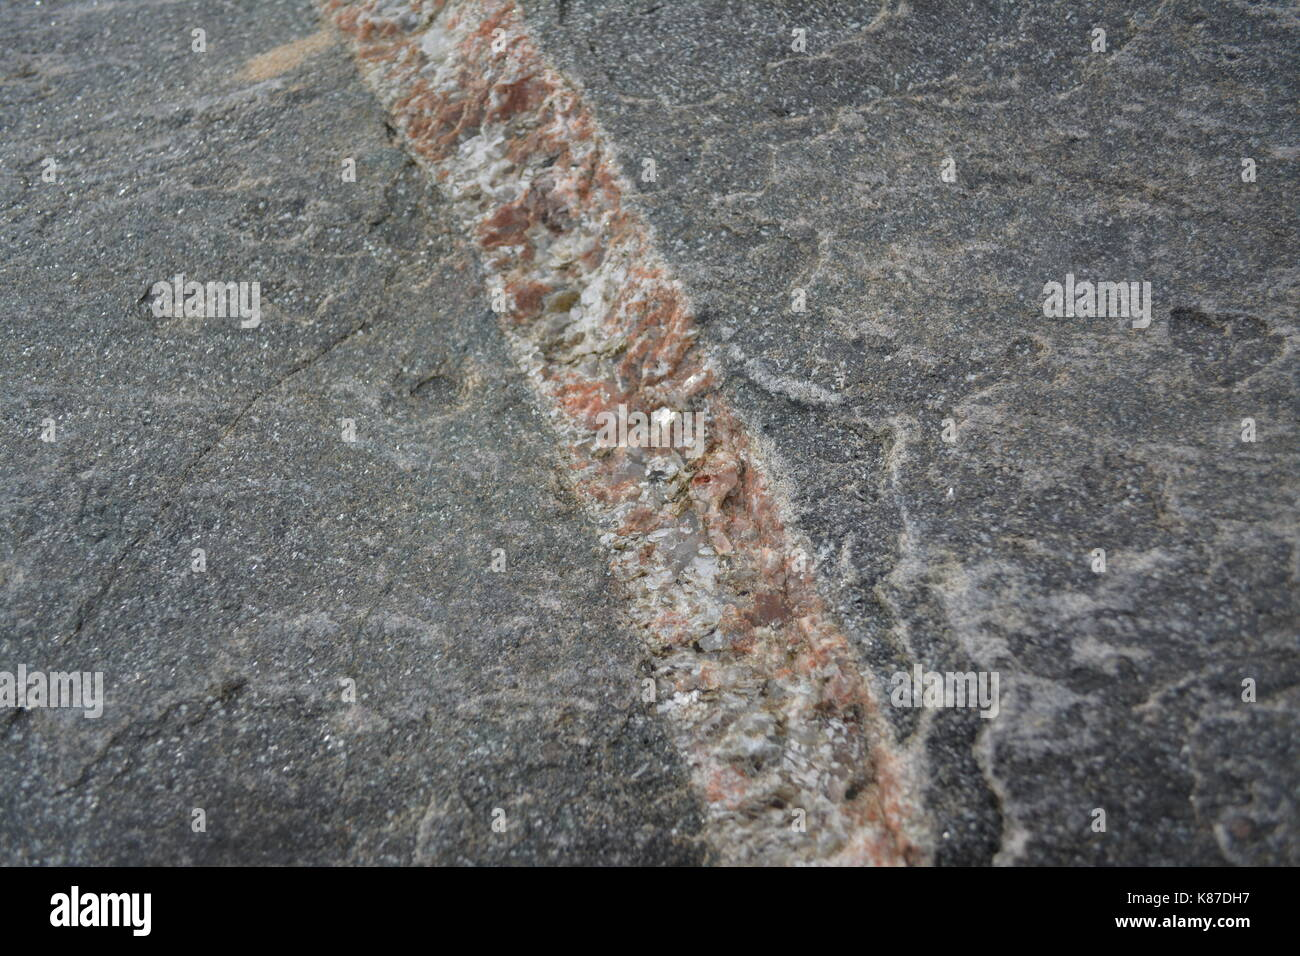 close up of large rock boulder stone showing igneous intrusion on beach at Rossmarkie Scotland England UK - Stock Image